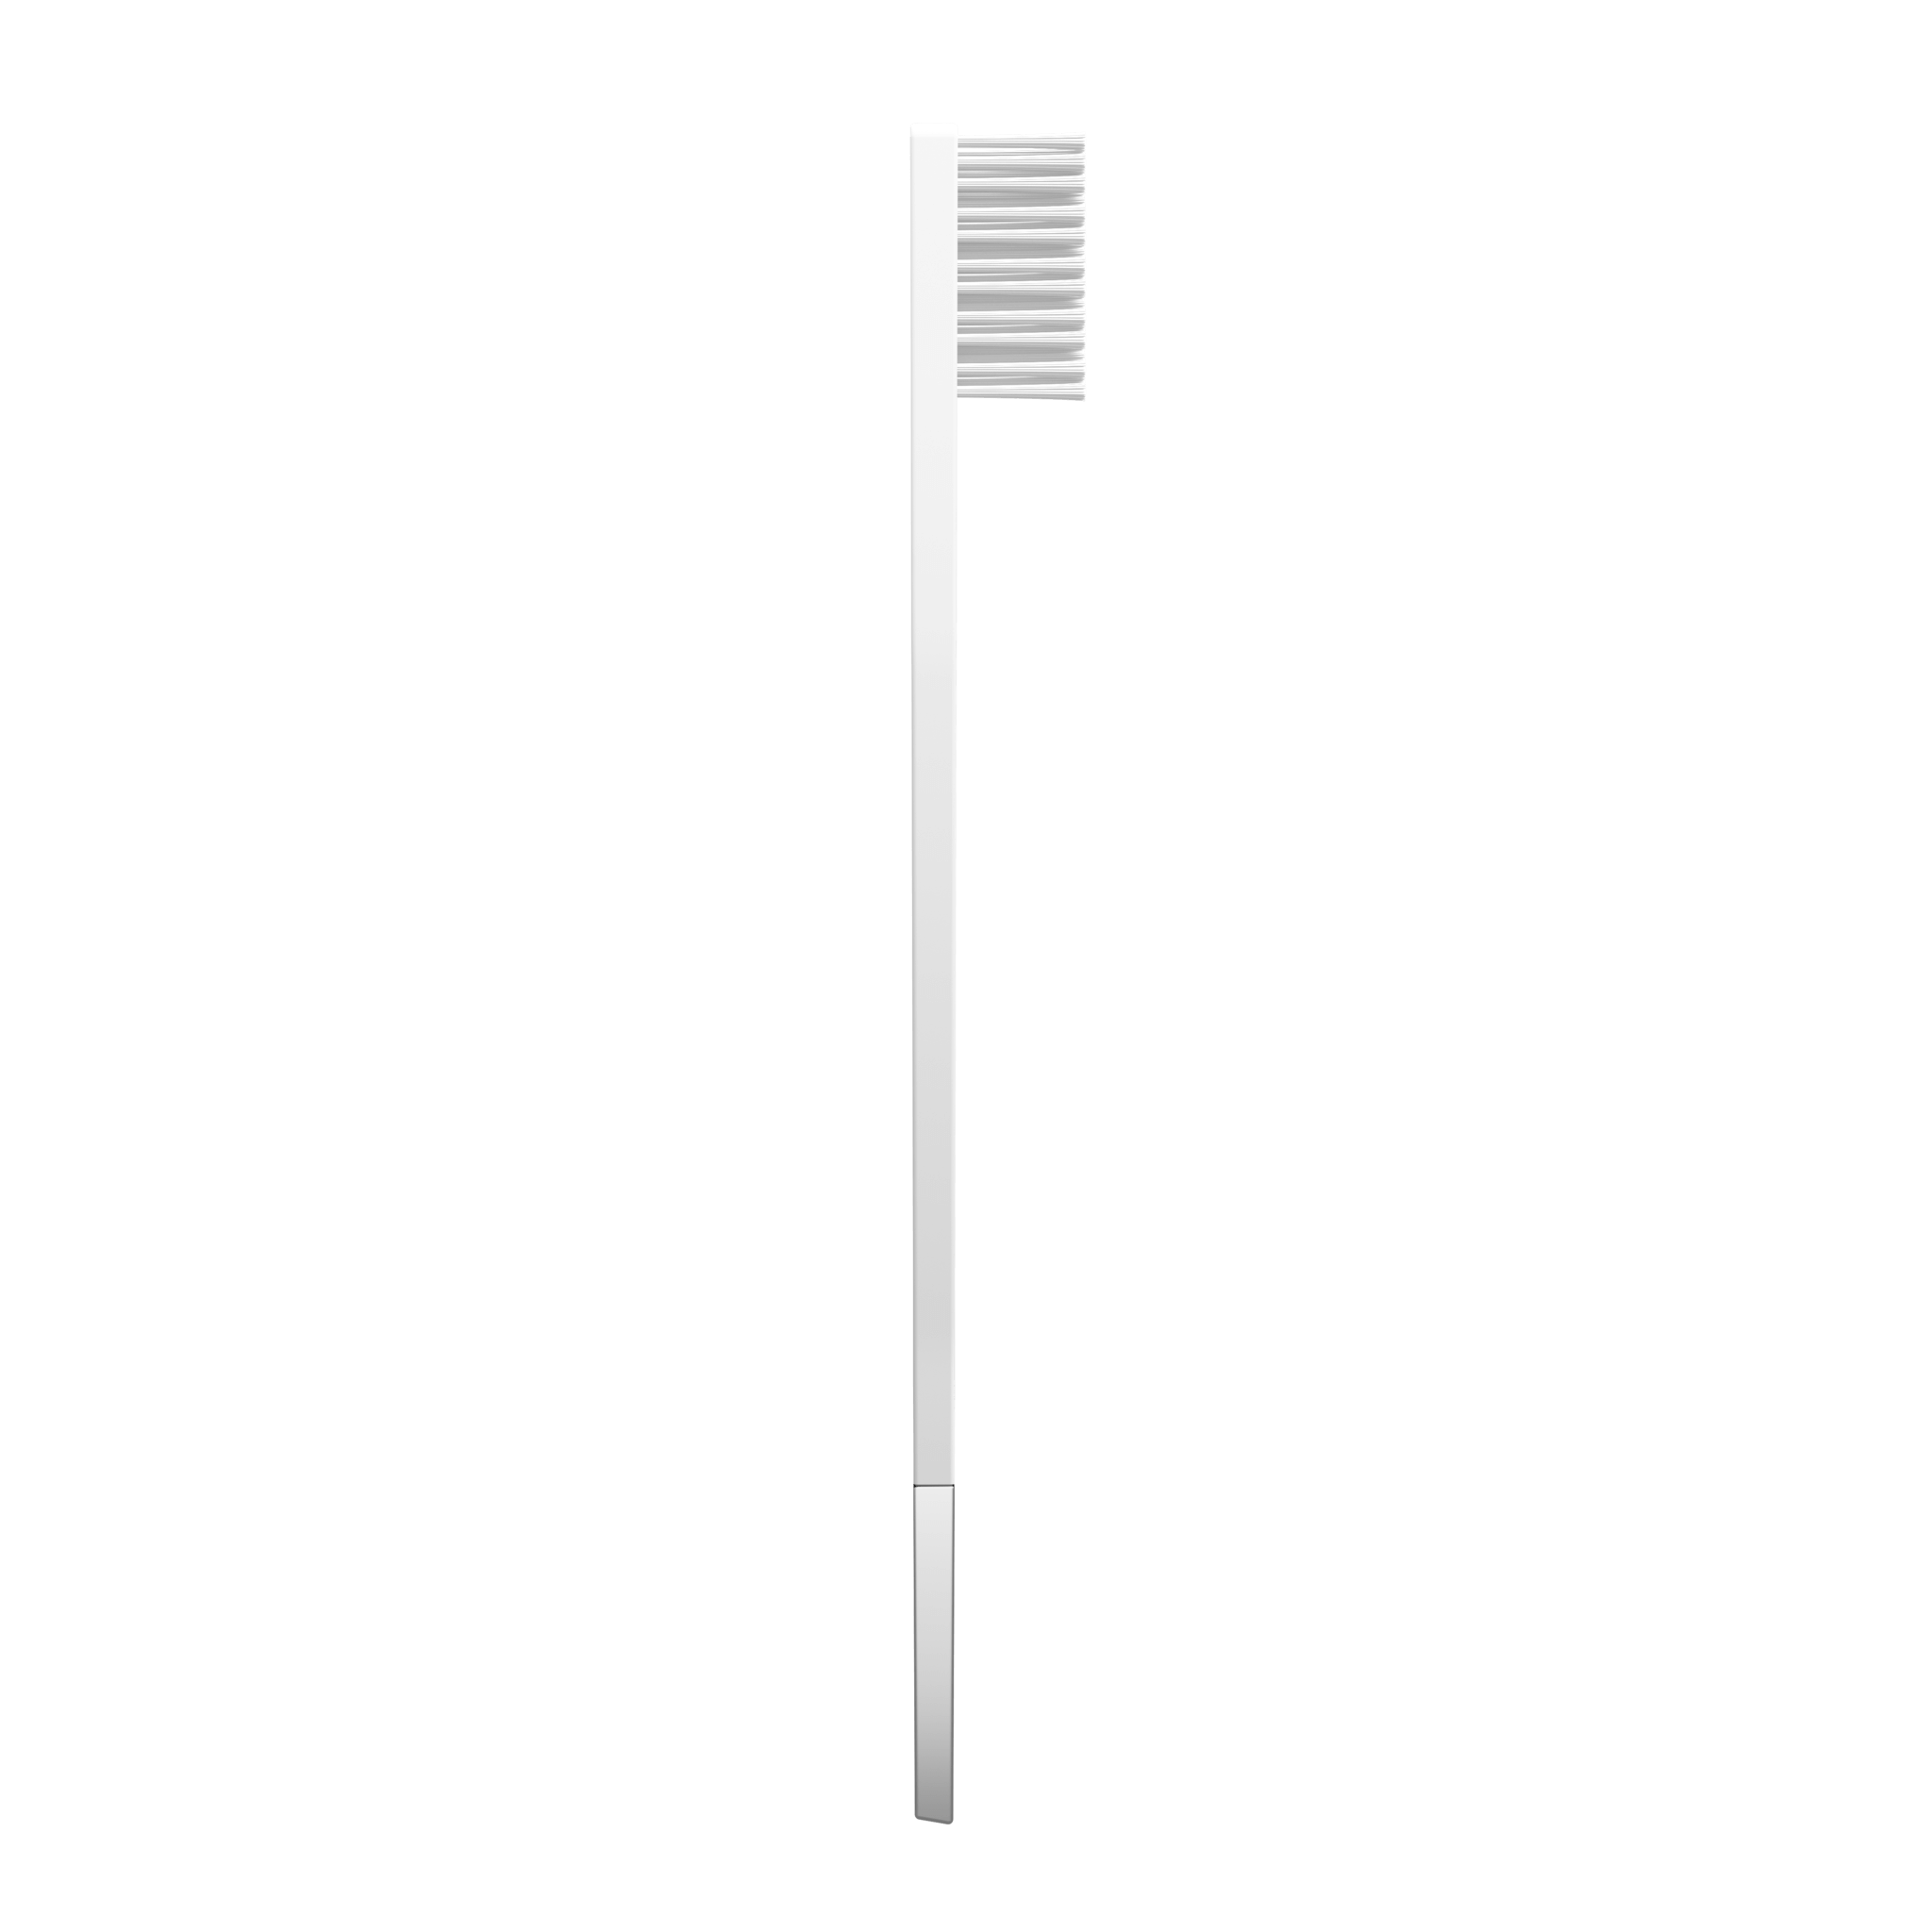 SLIM by Apriori white & silver disposable toothbrush